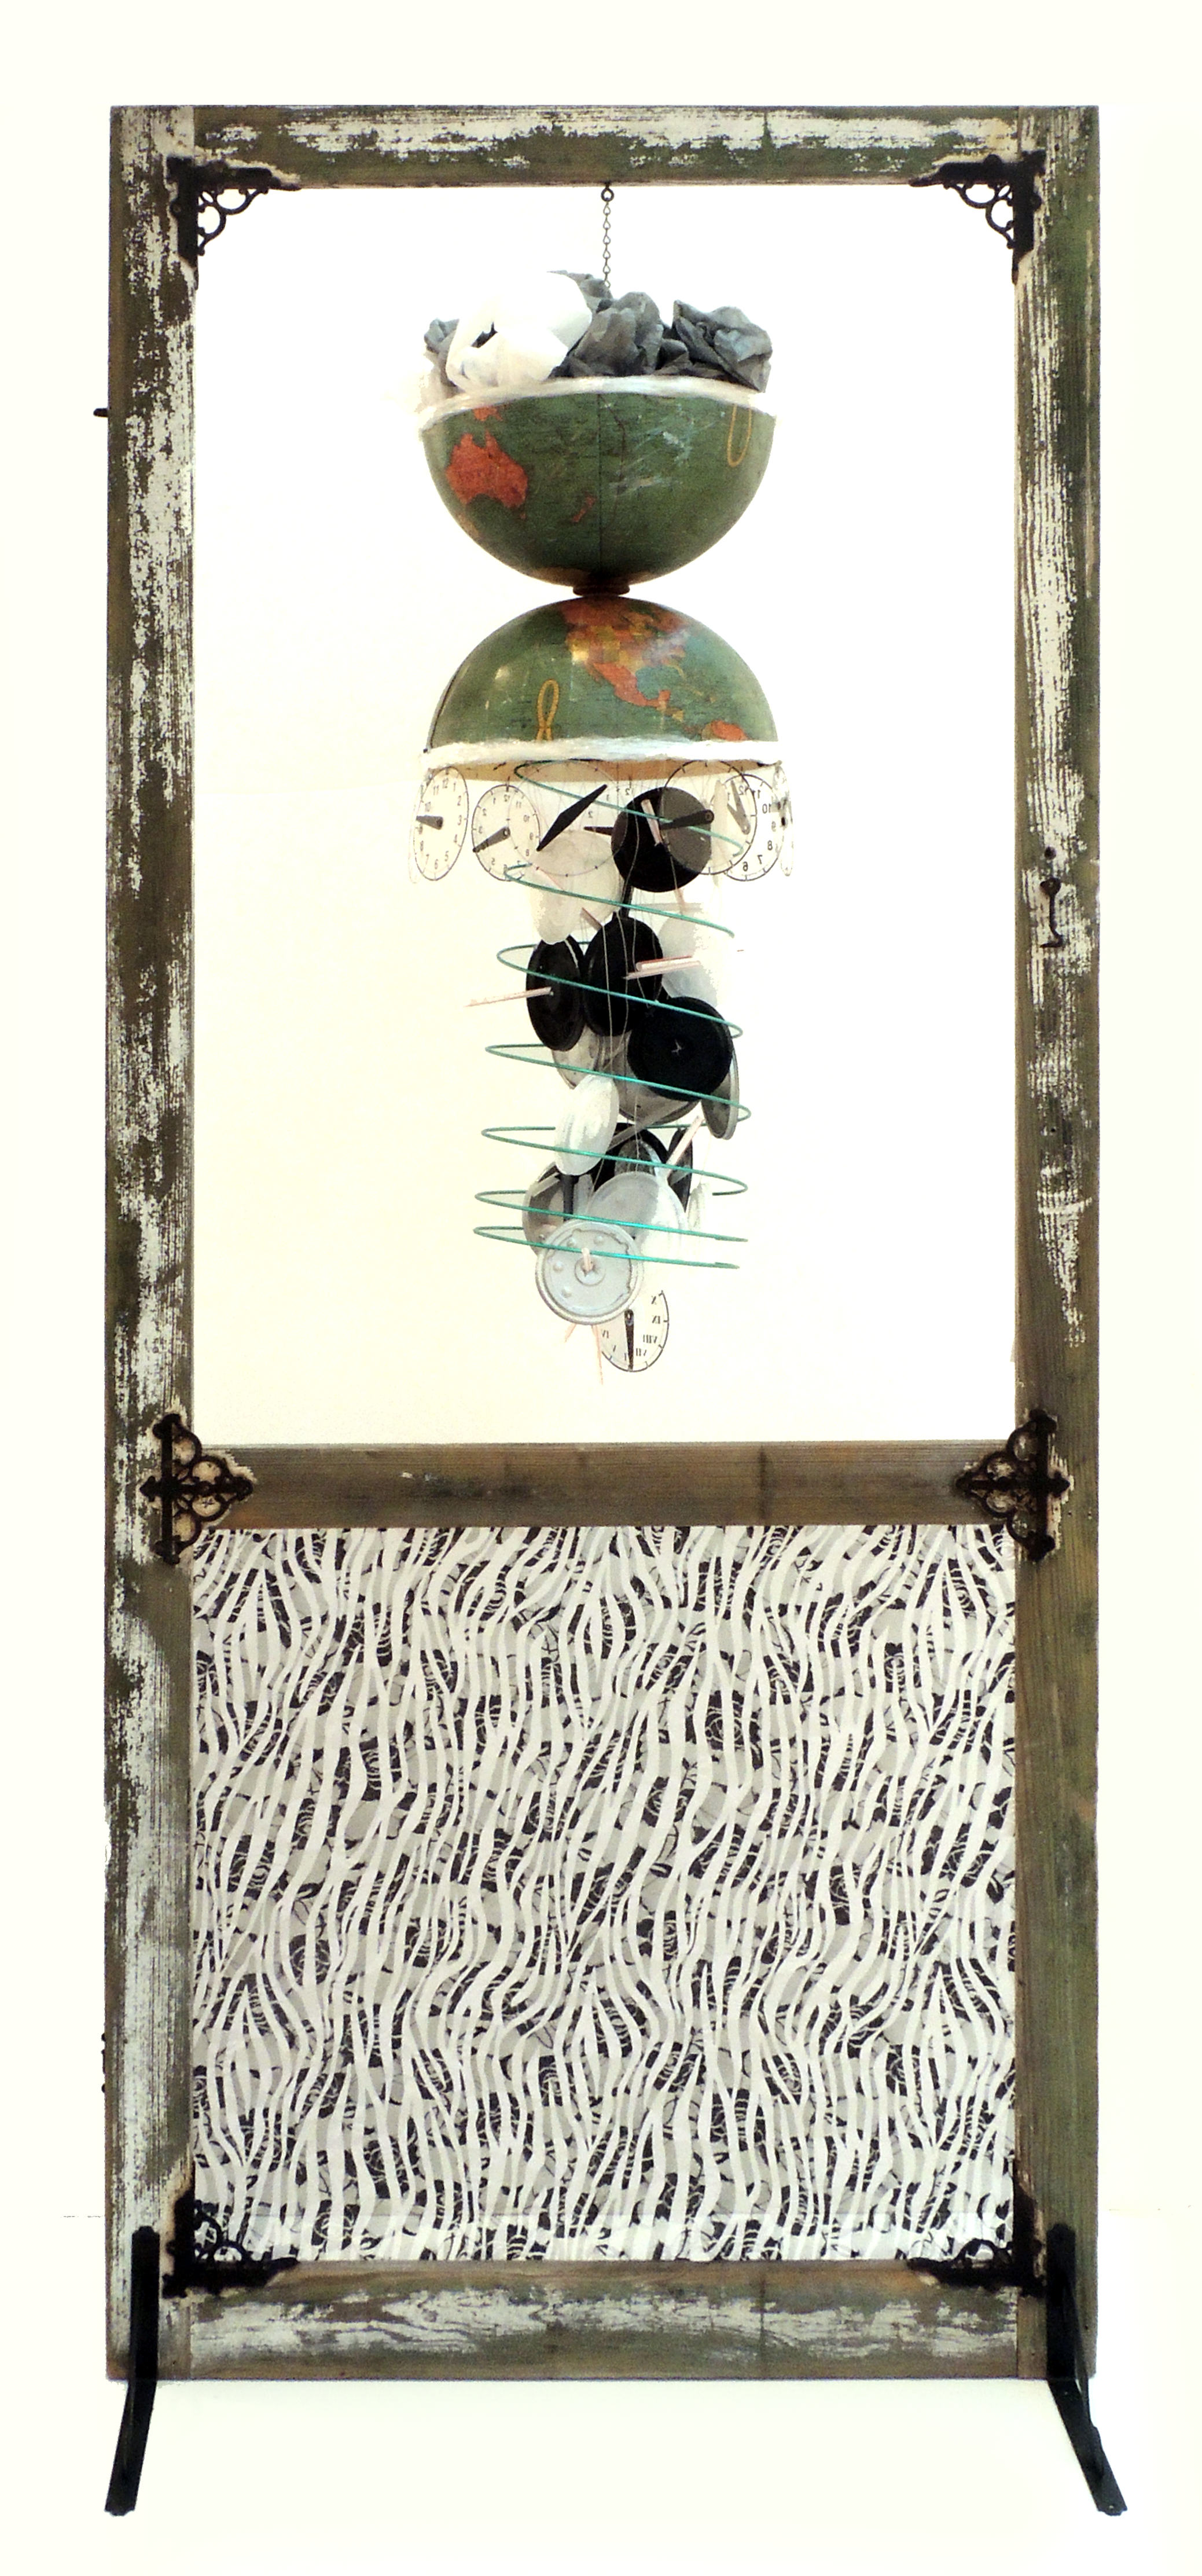 Kay Nutter | TOO LATE | Mixed media